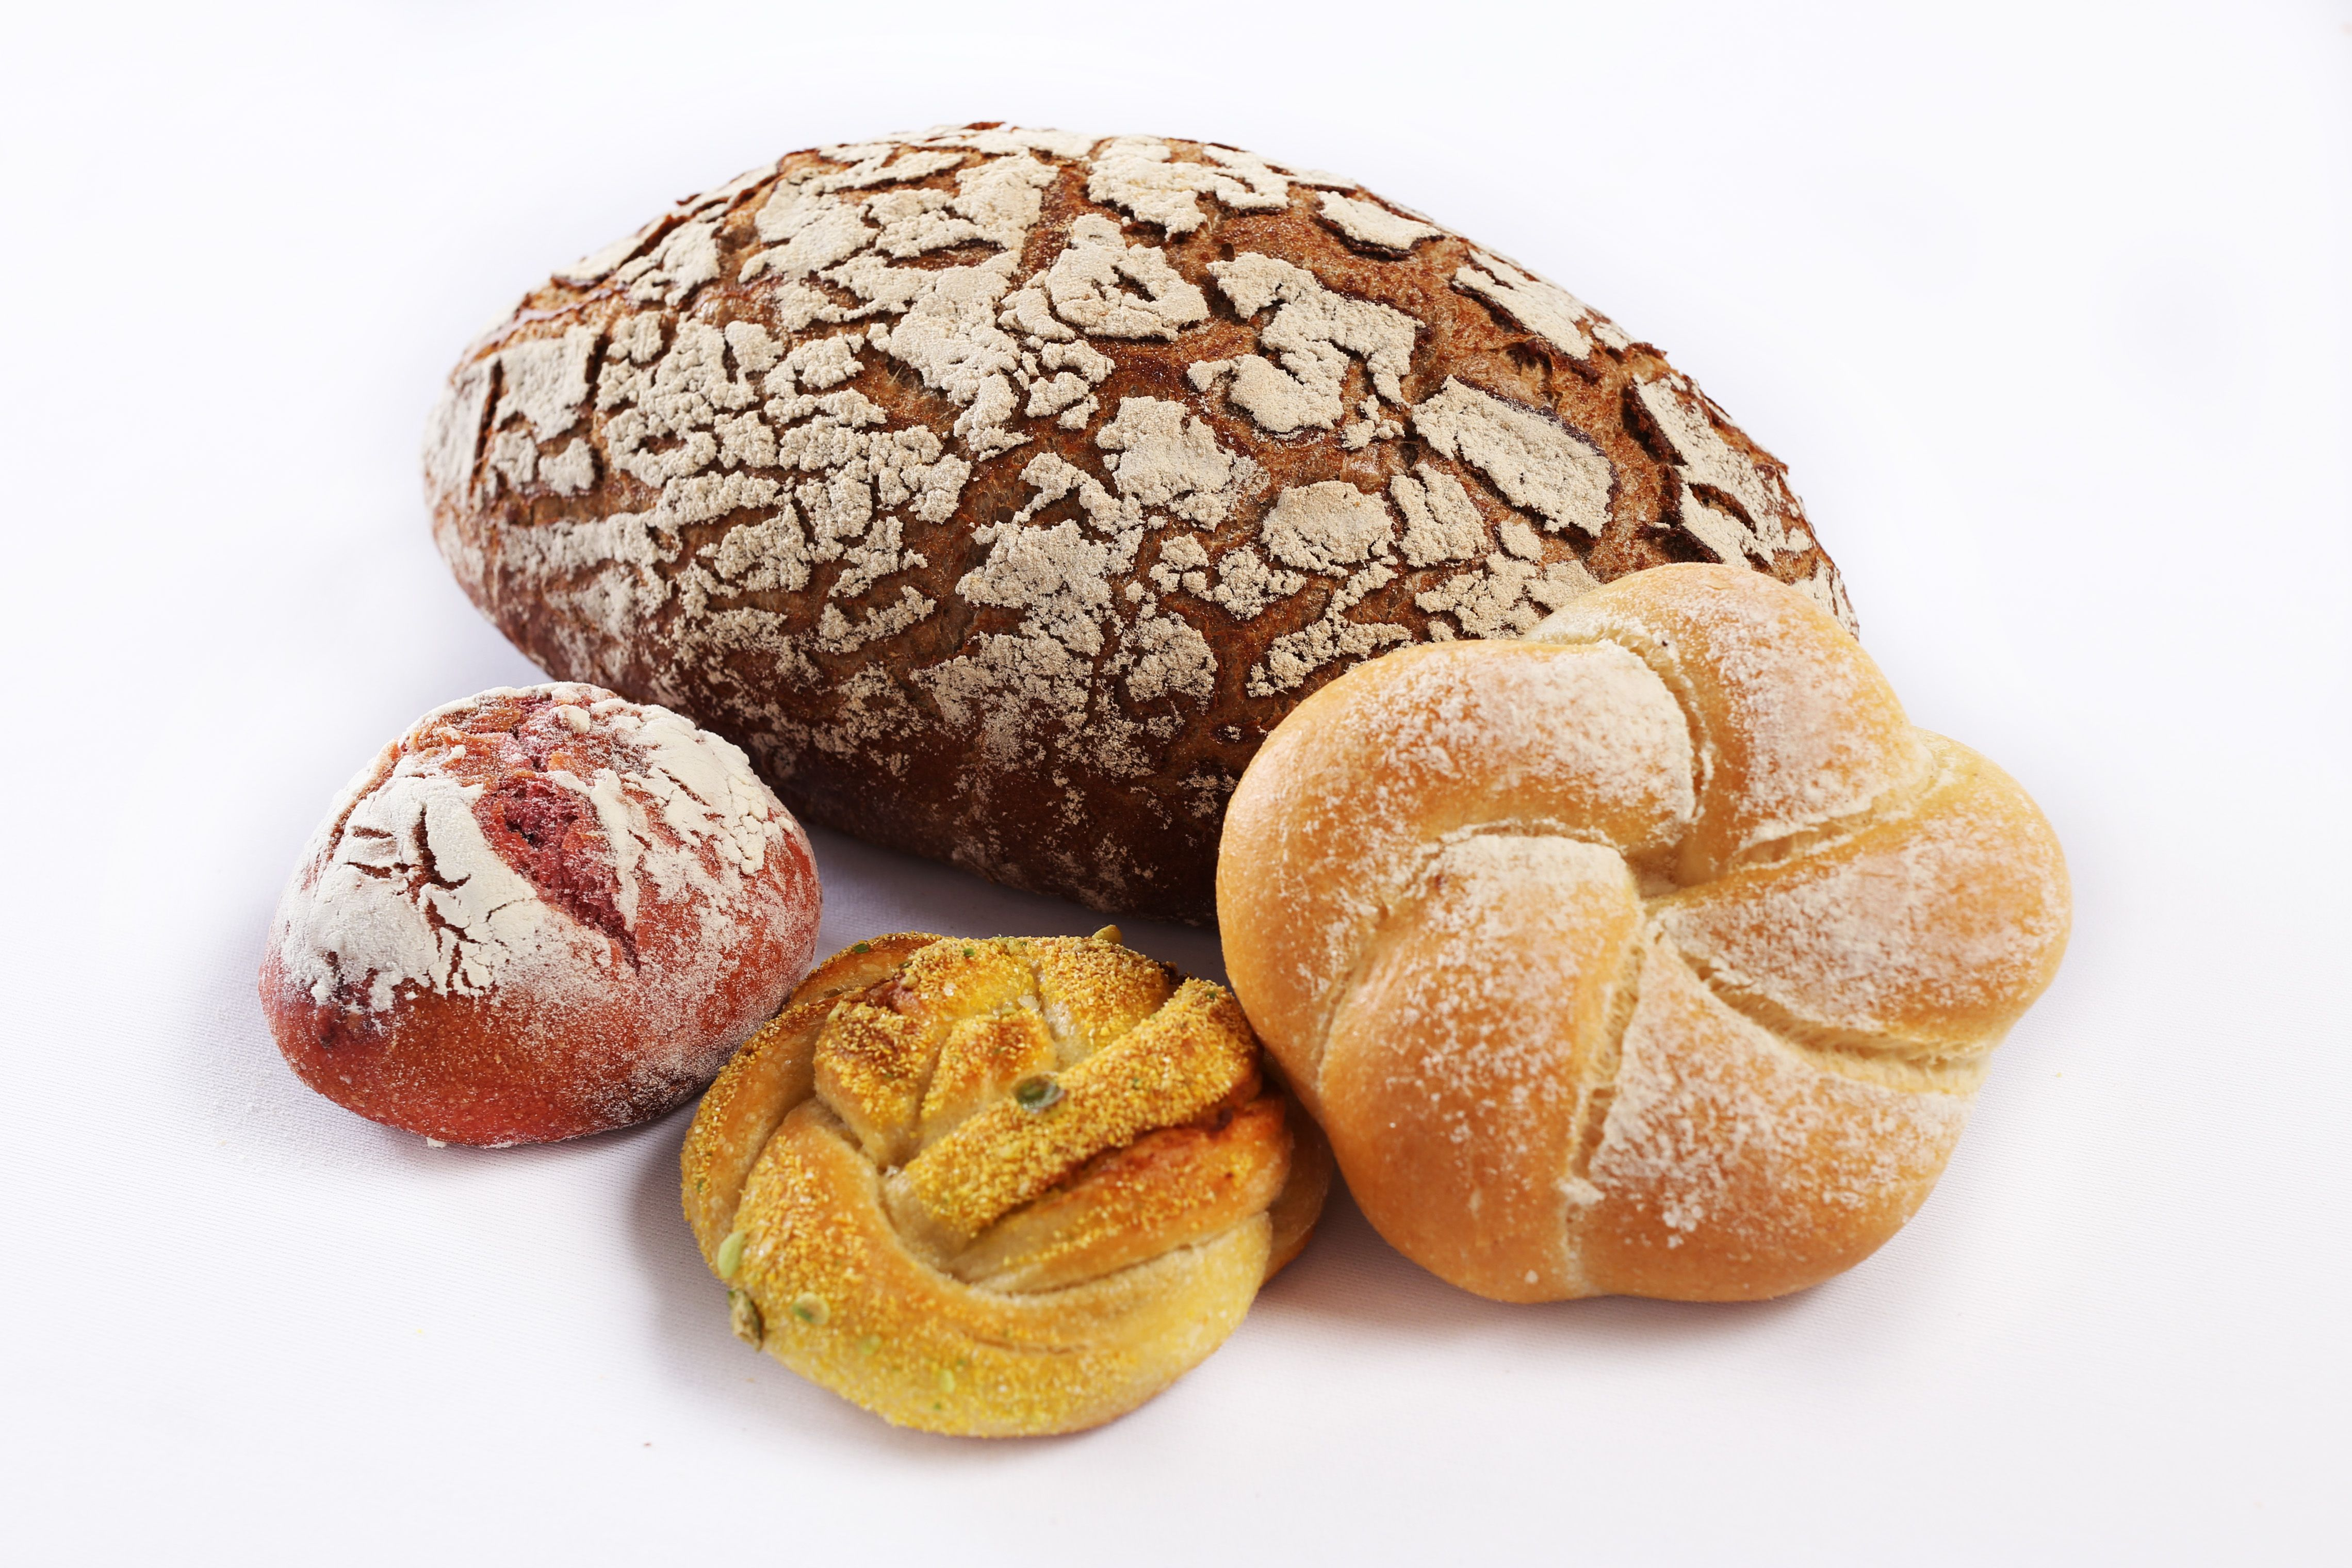 [AUSTRALIA TEAM - Asia Selection - Louis Lesaffre Cup]  Breads of the world by Dean TILDEN - Breads candidate   #BakeryLesaffreCup #Asia #Australia #bread #baking #SIALInterFOOD2015